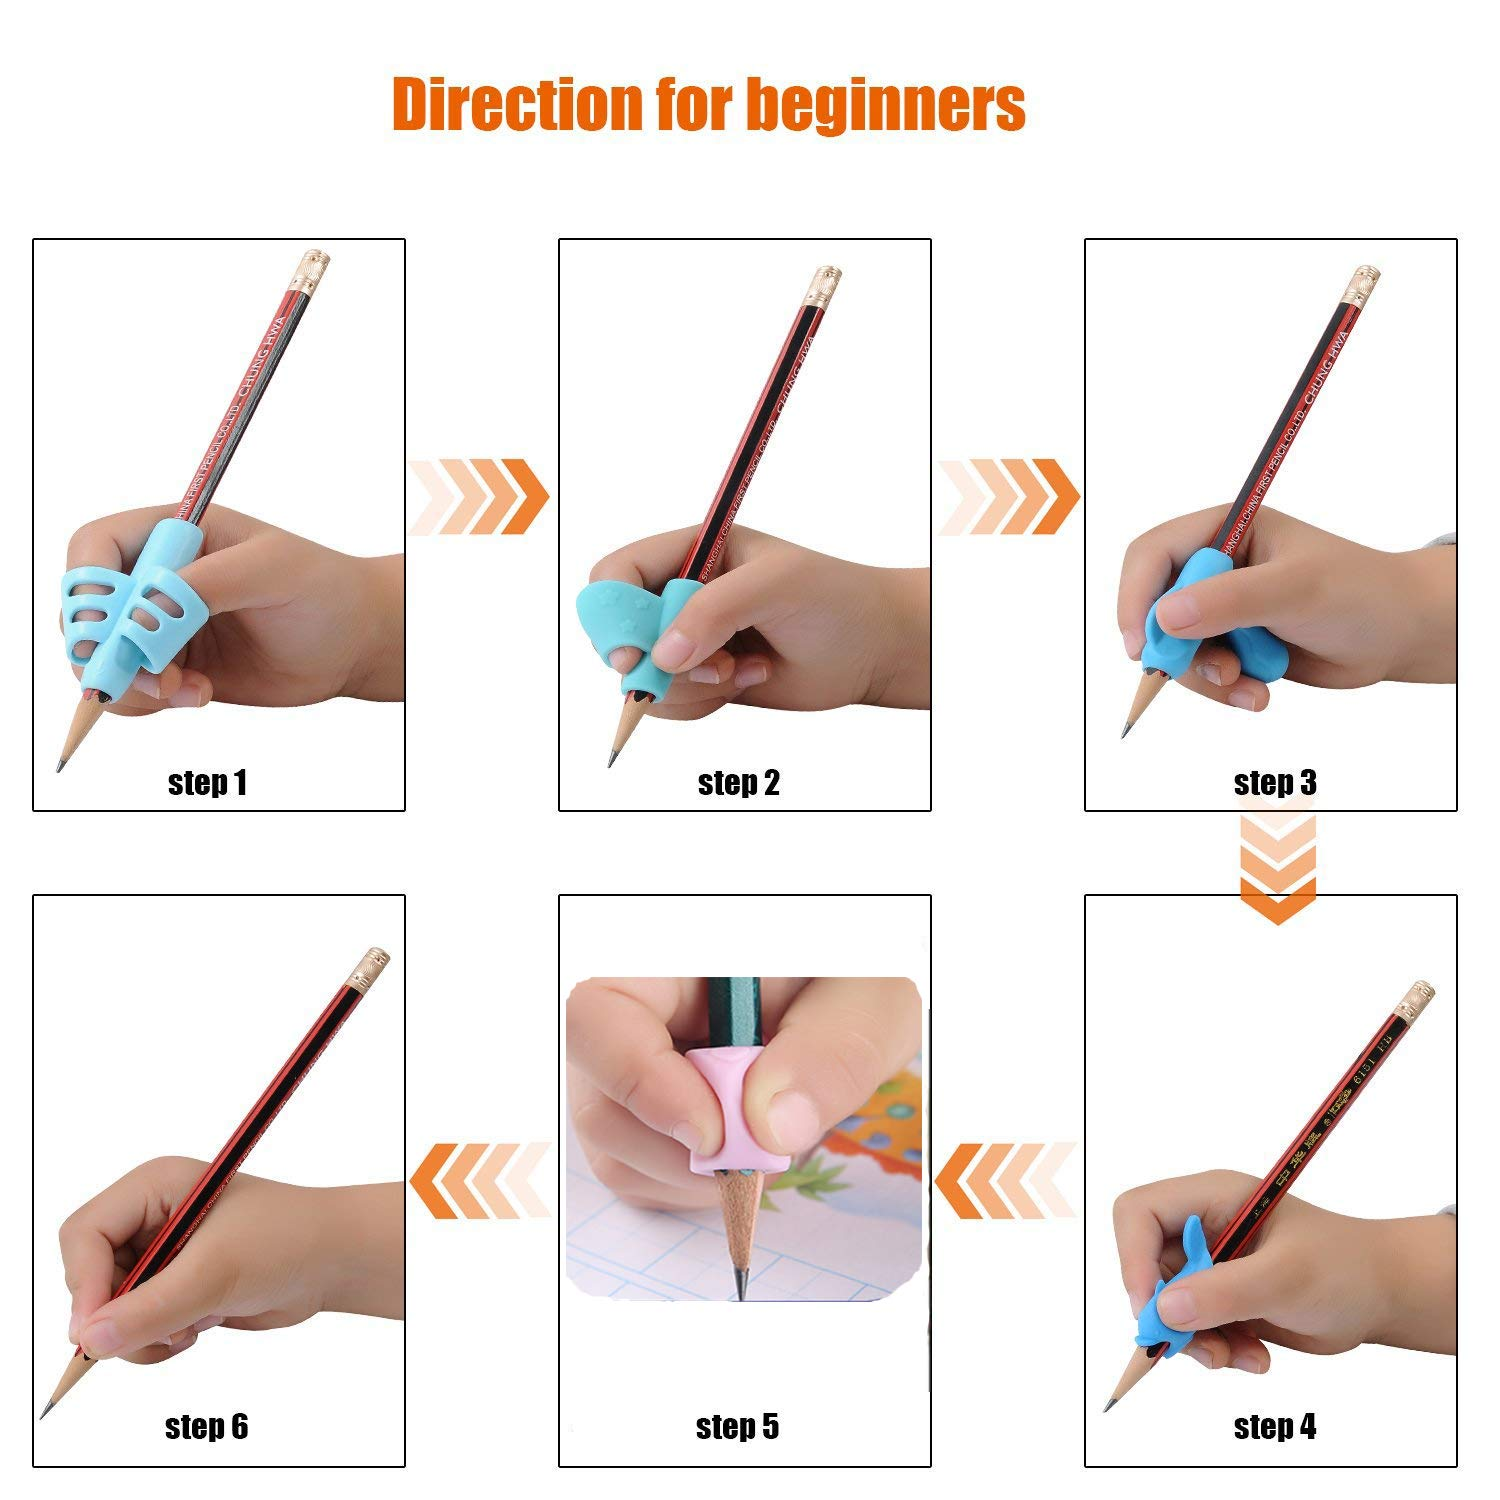 Pencil Writing Grips for Kids Handwriting 20 Pack Pencil Holder Utensils Pen Writing Aid Grip Posture Correction Tool with Comfortable Ergonomic Writing by Bomach (Image #8)